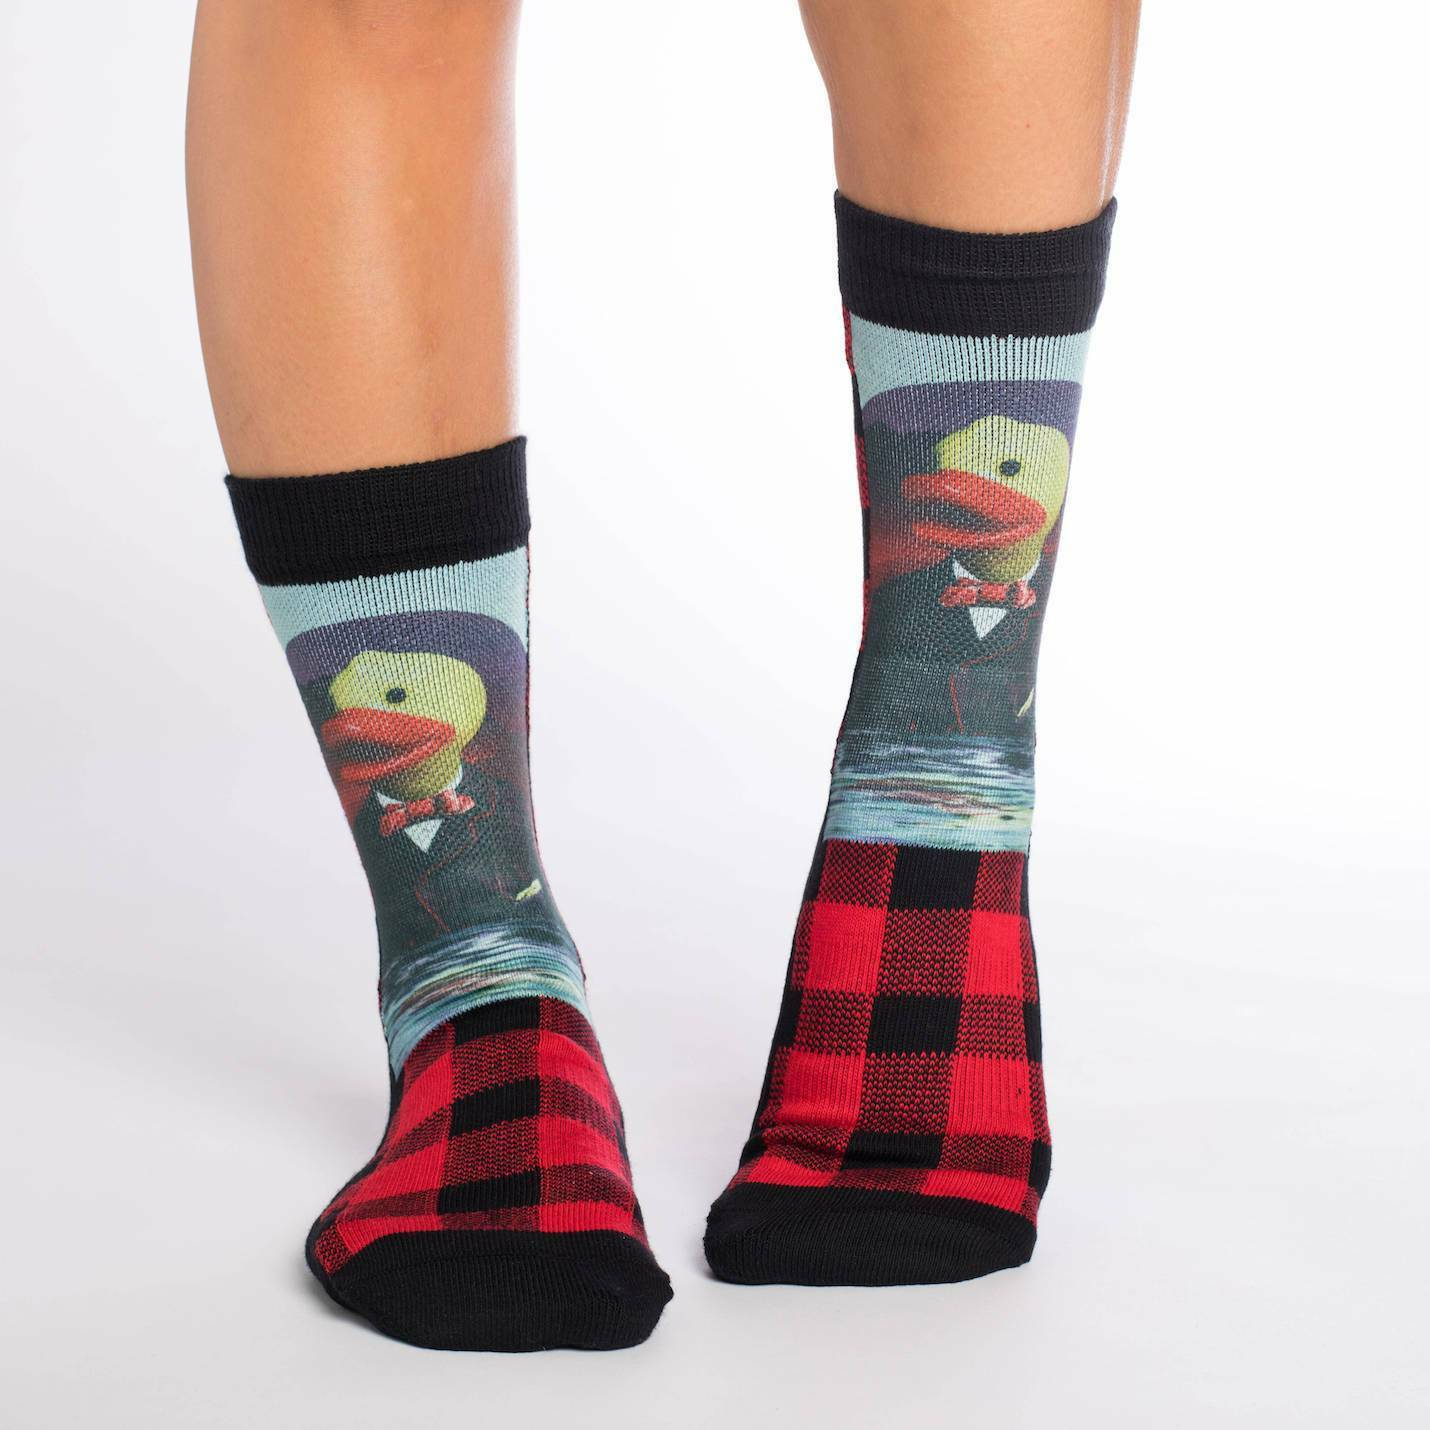 Adult Shoe Size 5-9 Red Good Luck Sock Womens Rubber Ducks Crew Socks